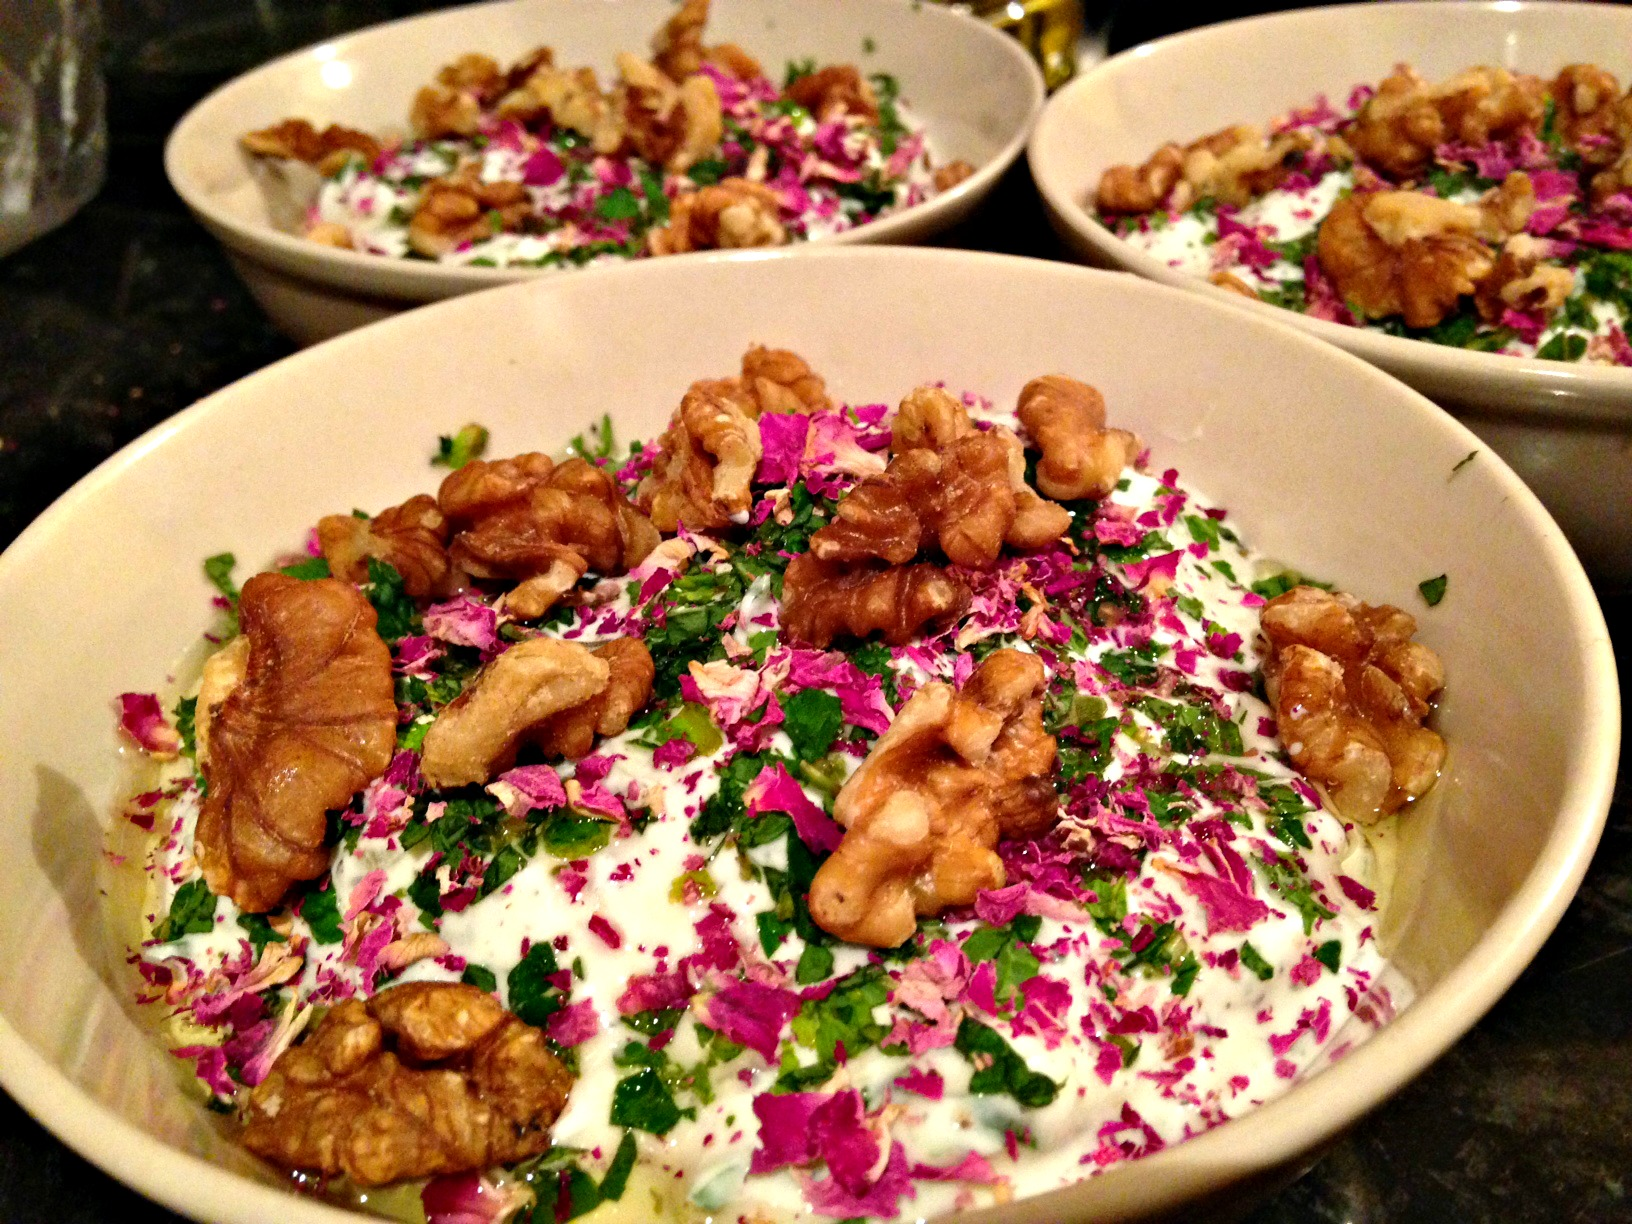 Maast-o-Khiar: yoghurt, cucumber and mint dip with walnut, herbs and rose petals